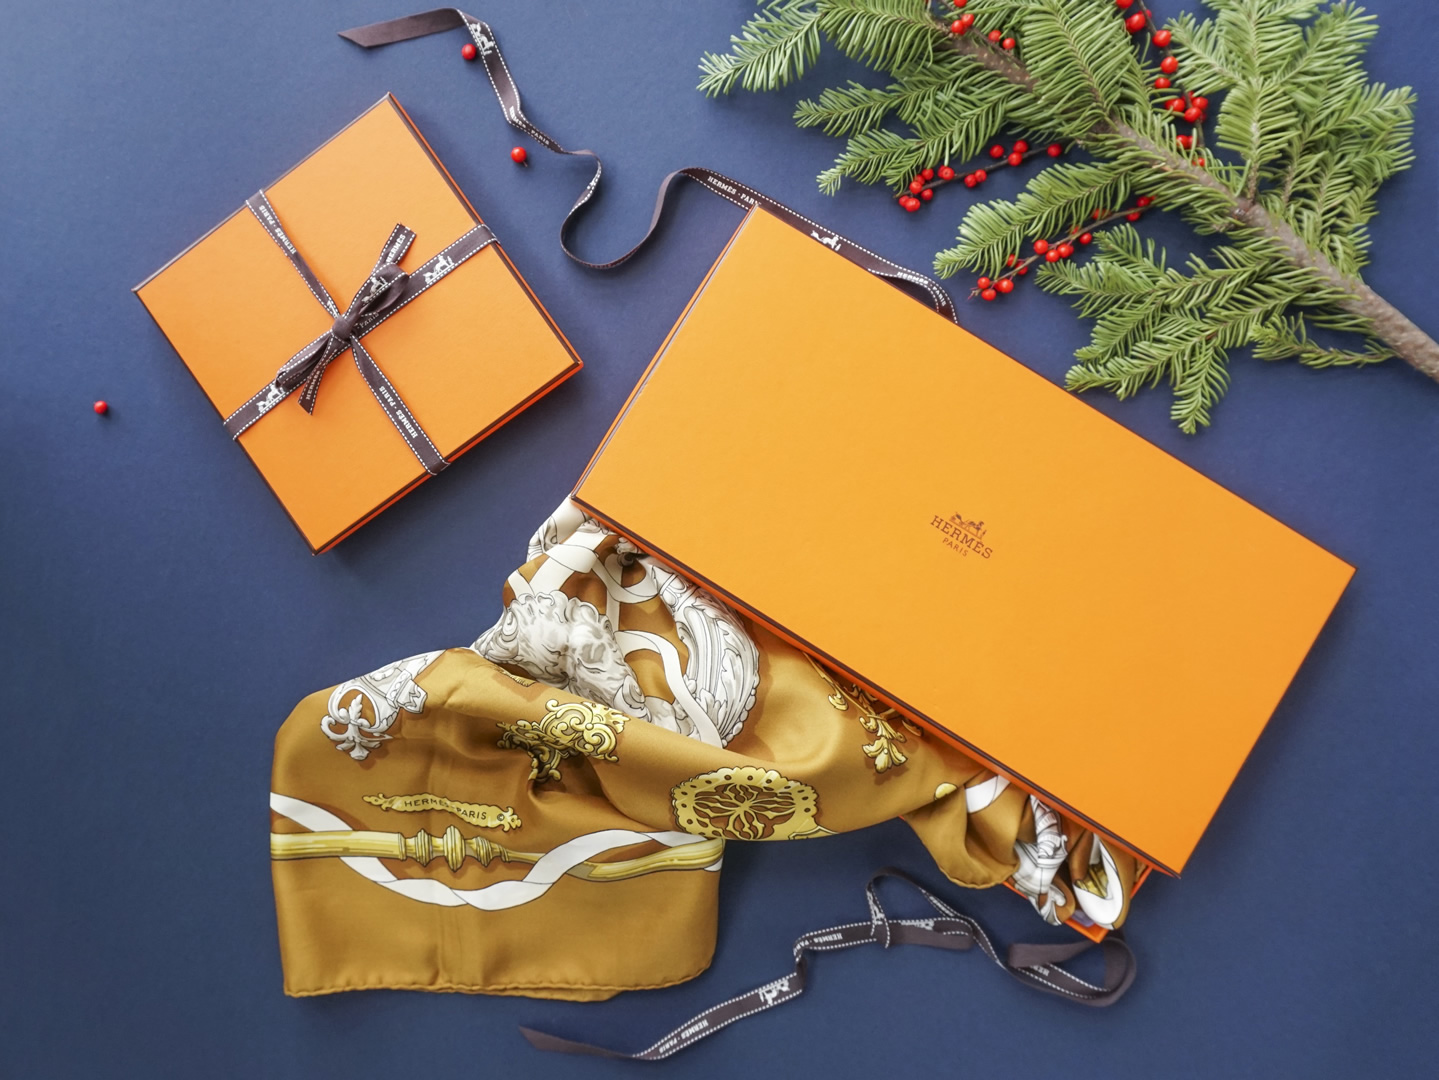 Turnabout Luxury Consignment, South Granville Holiday Gift Guide 2017, Vancouver, British Columbia, Canada